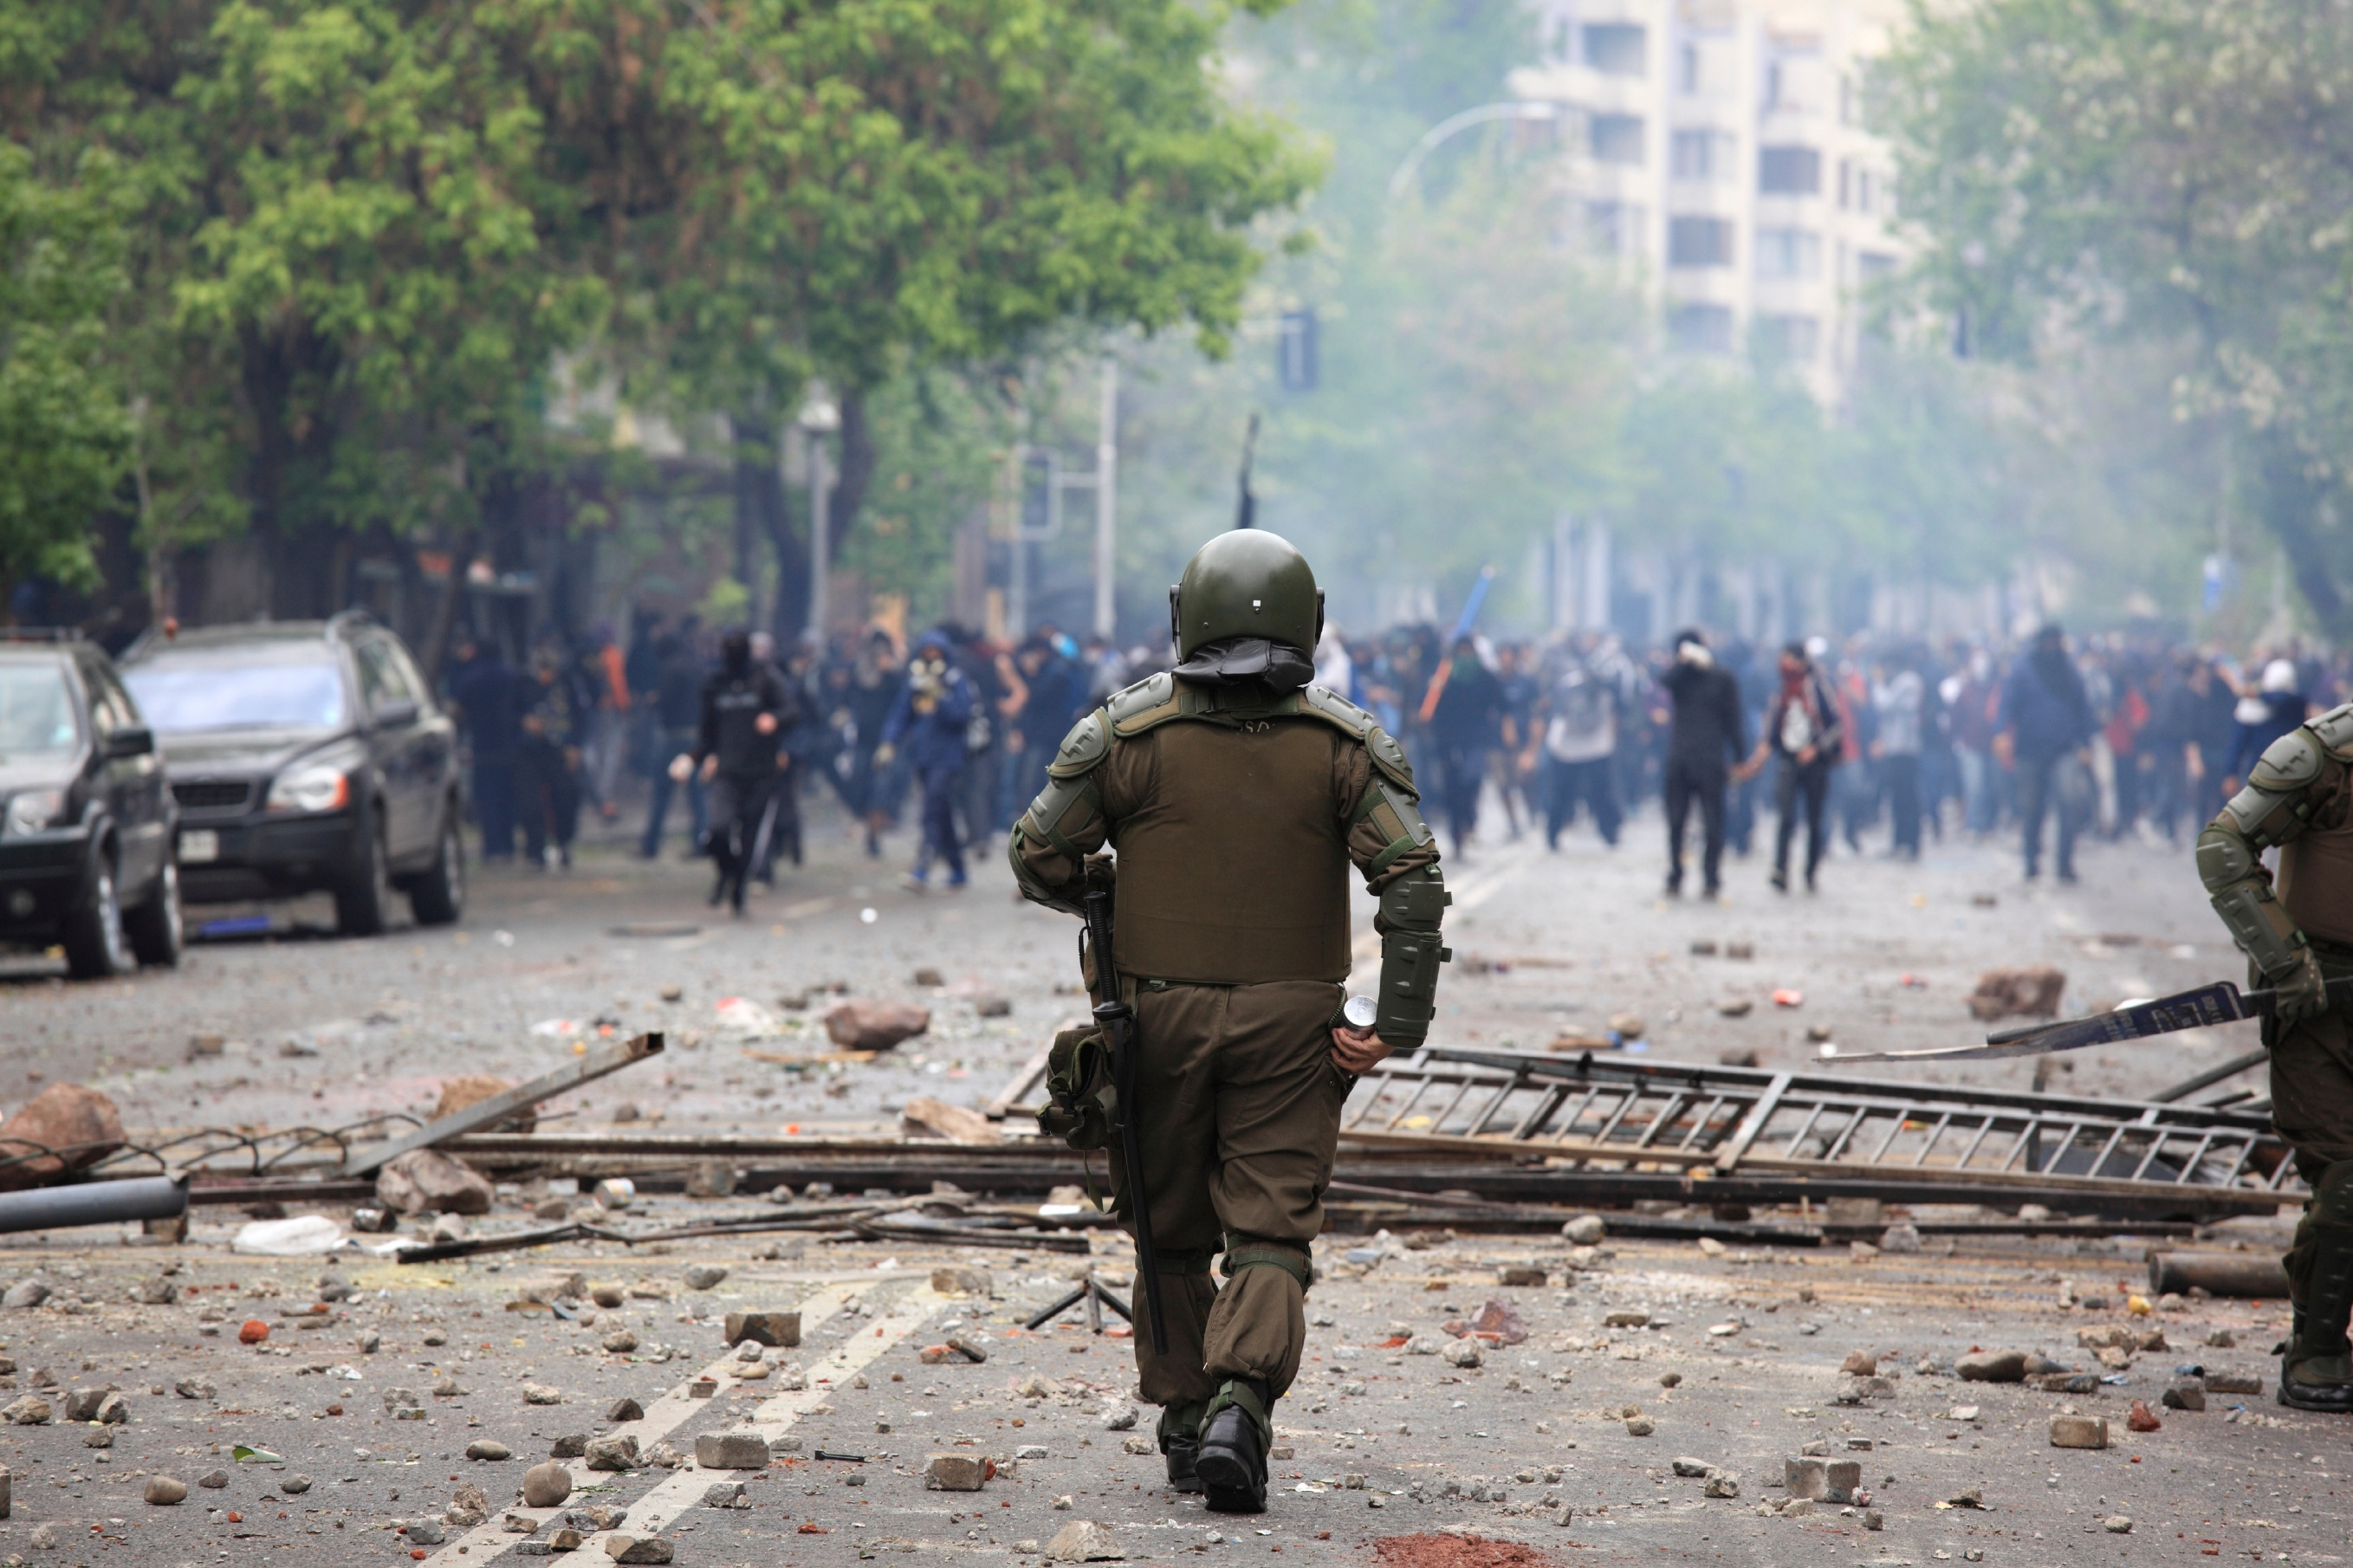 Page 3 - iStock_000019251706_Large - riot police